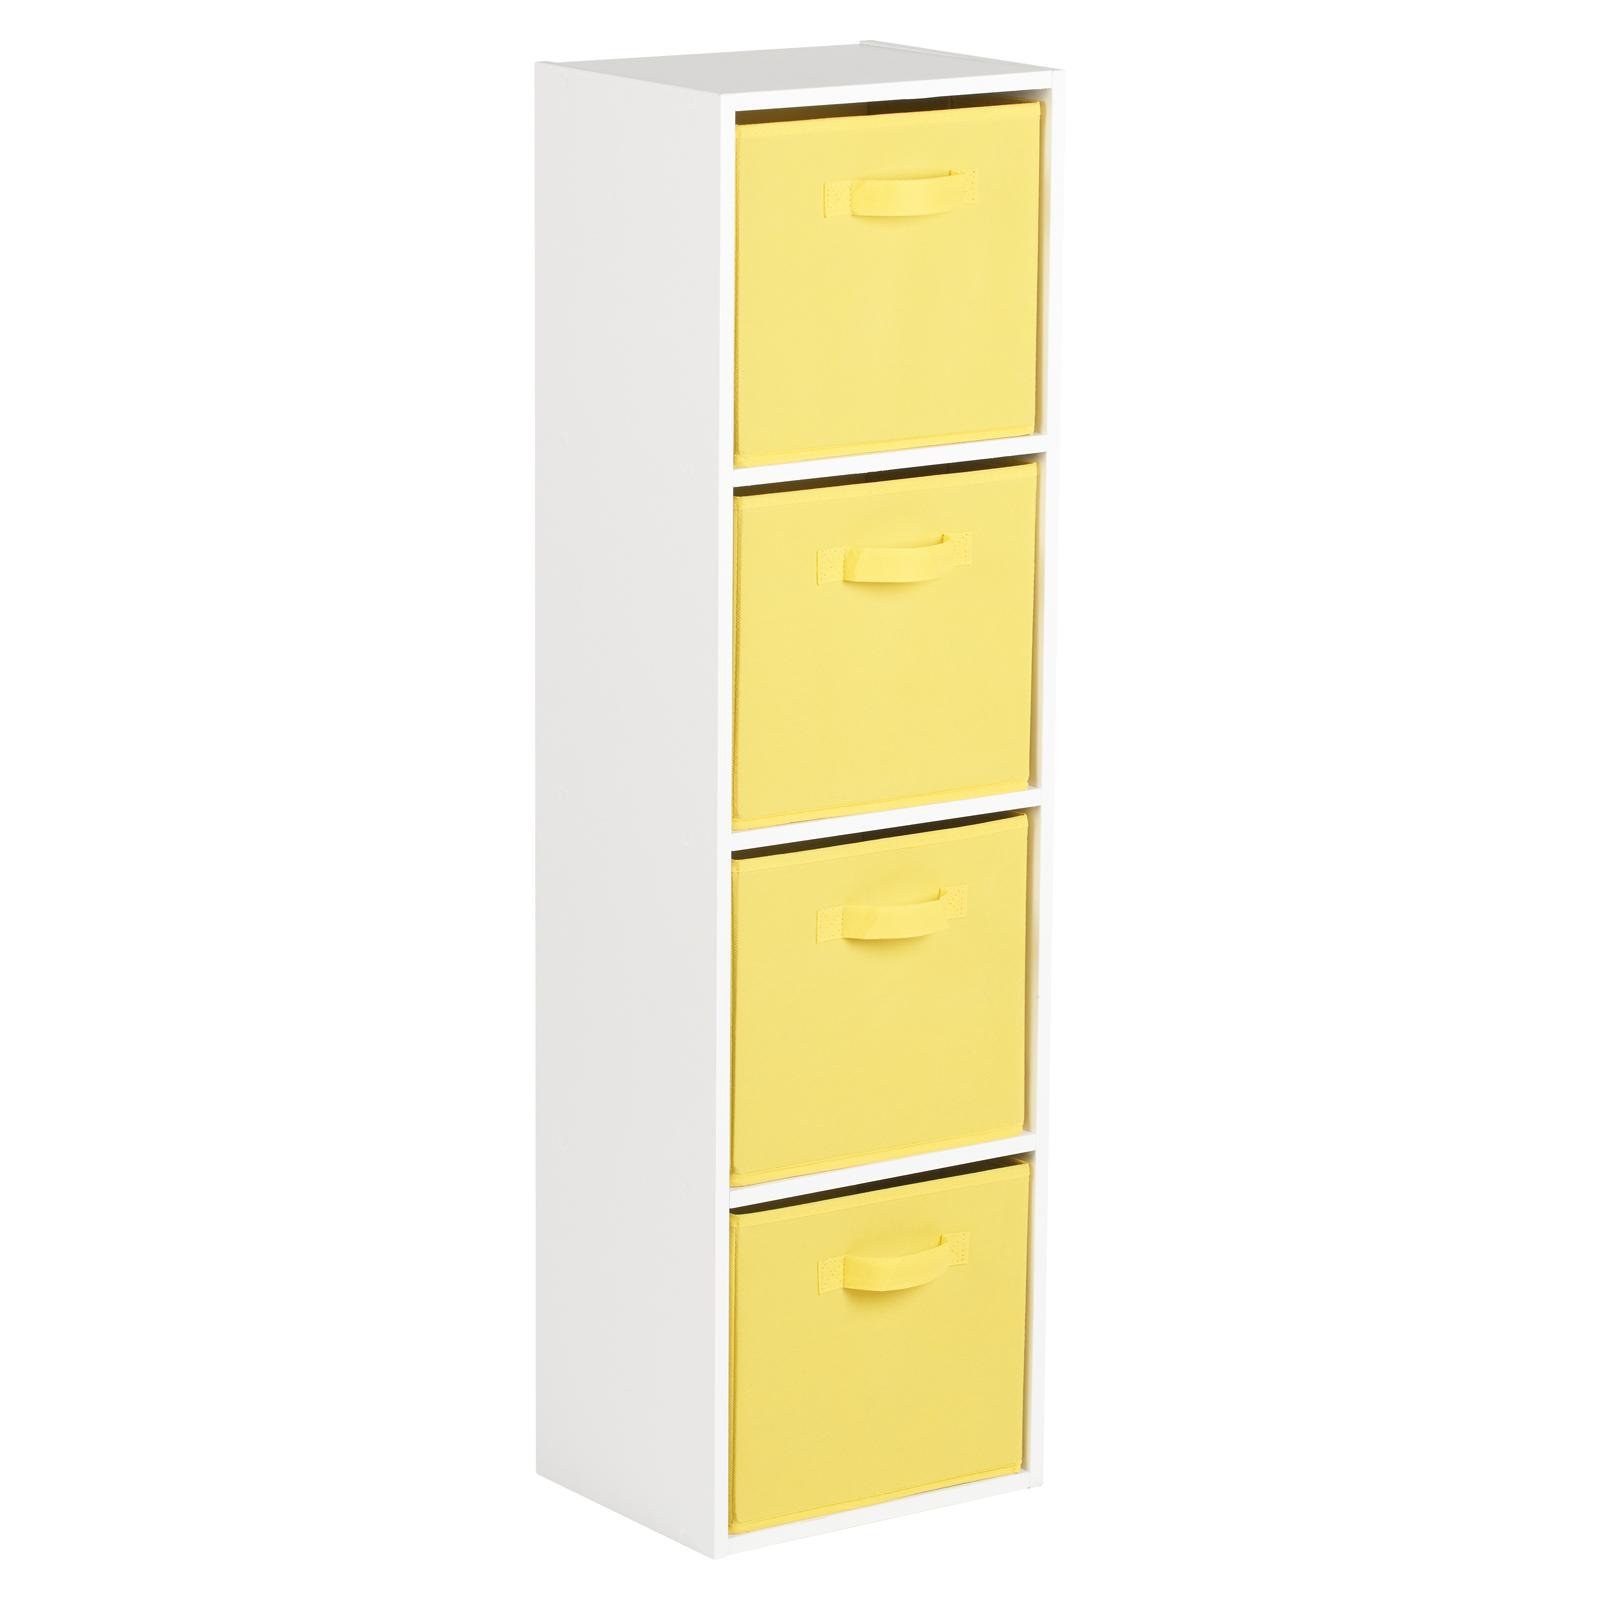 image-Hartleys White 4 Tier Cube Storage Unit & 4 Handled Box Drawers - Yellow